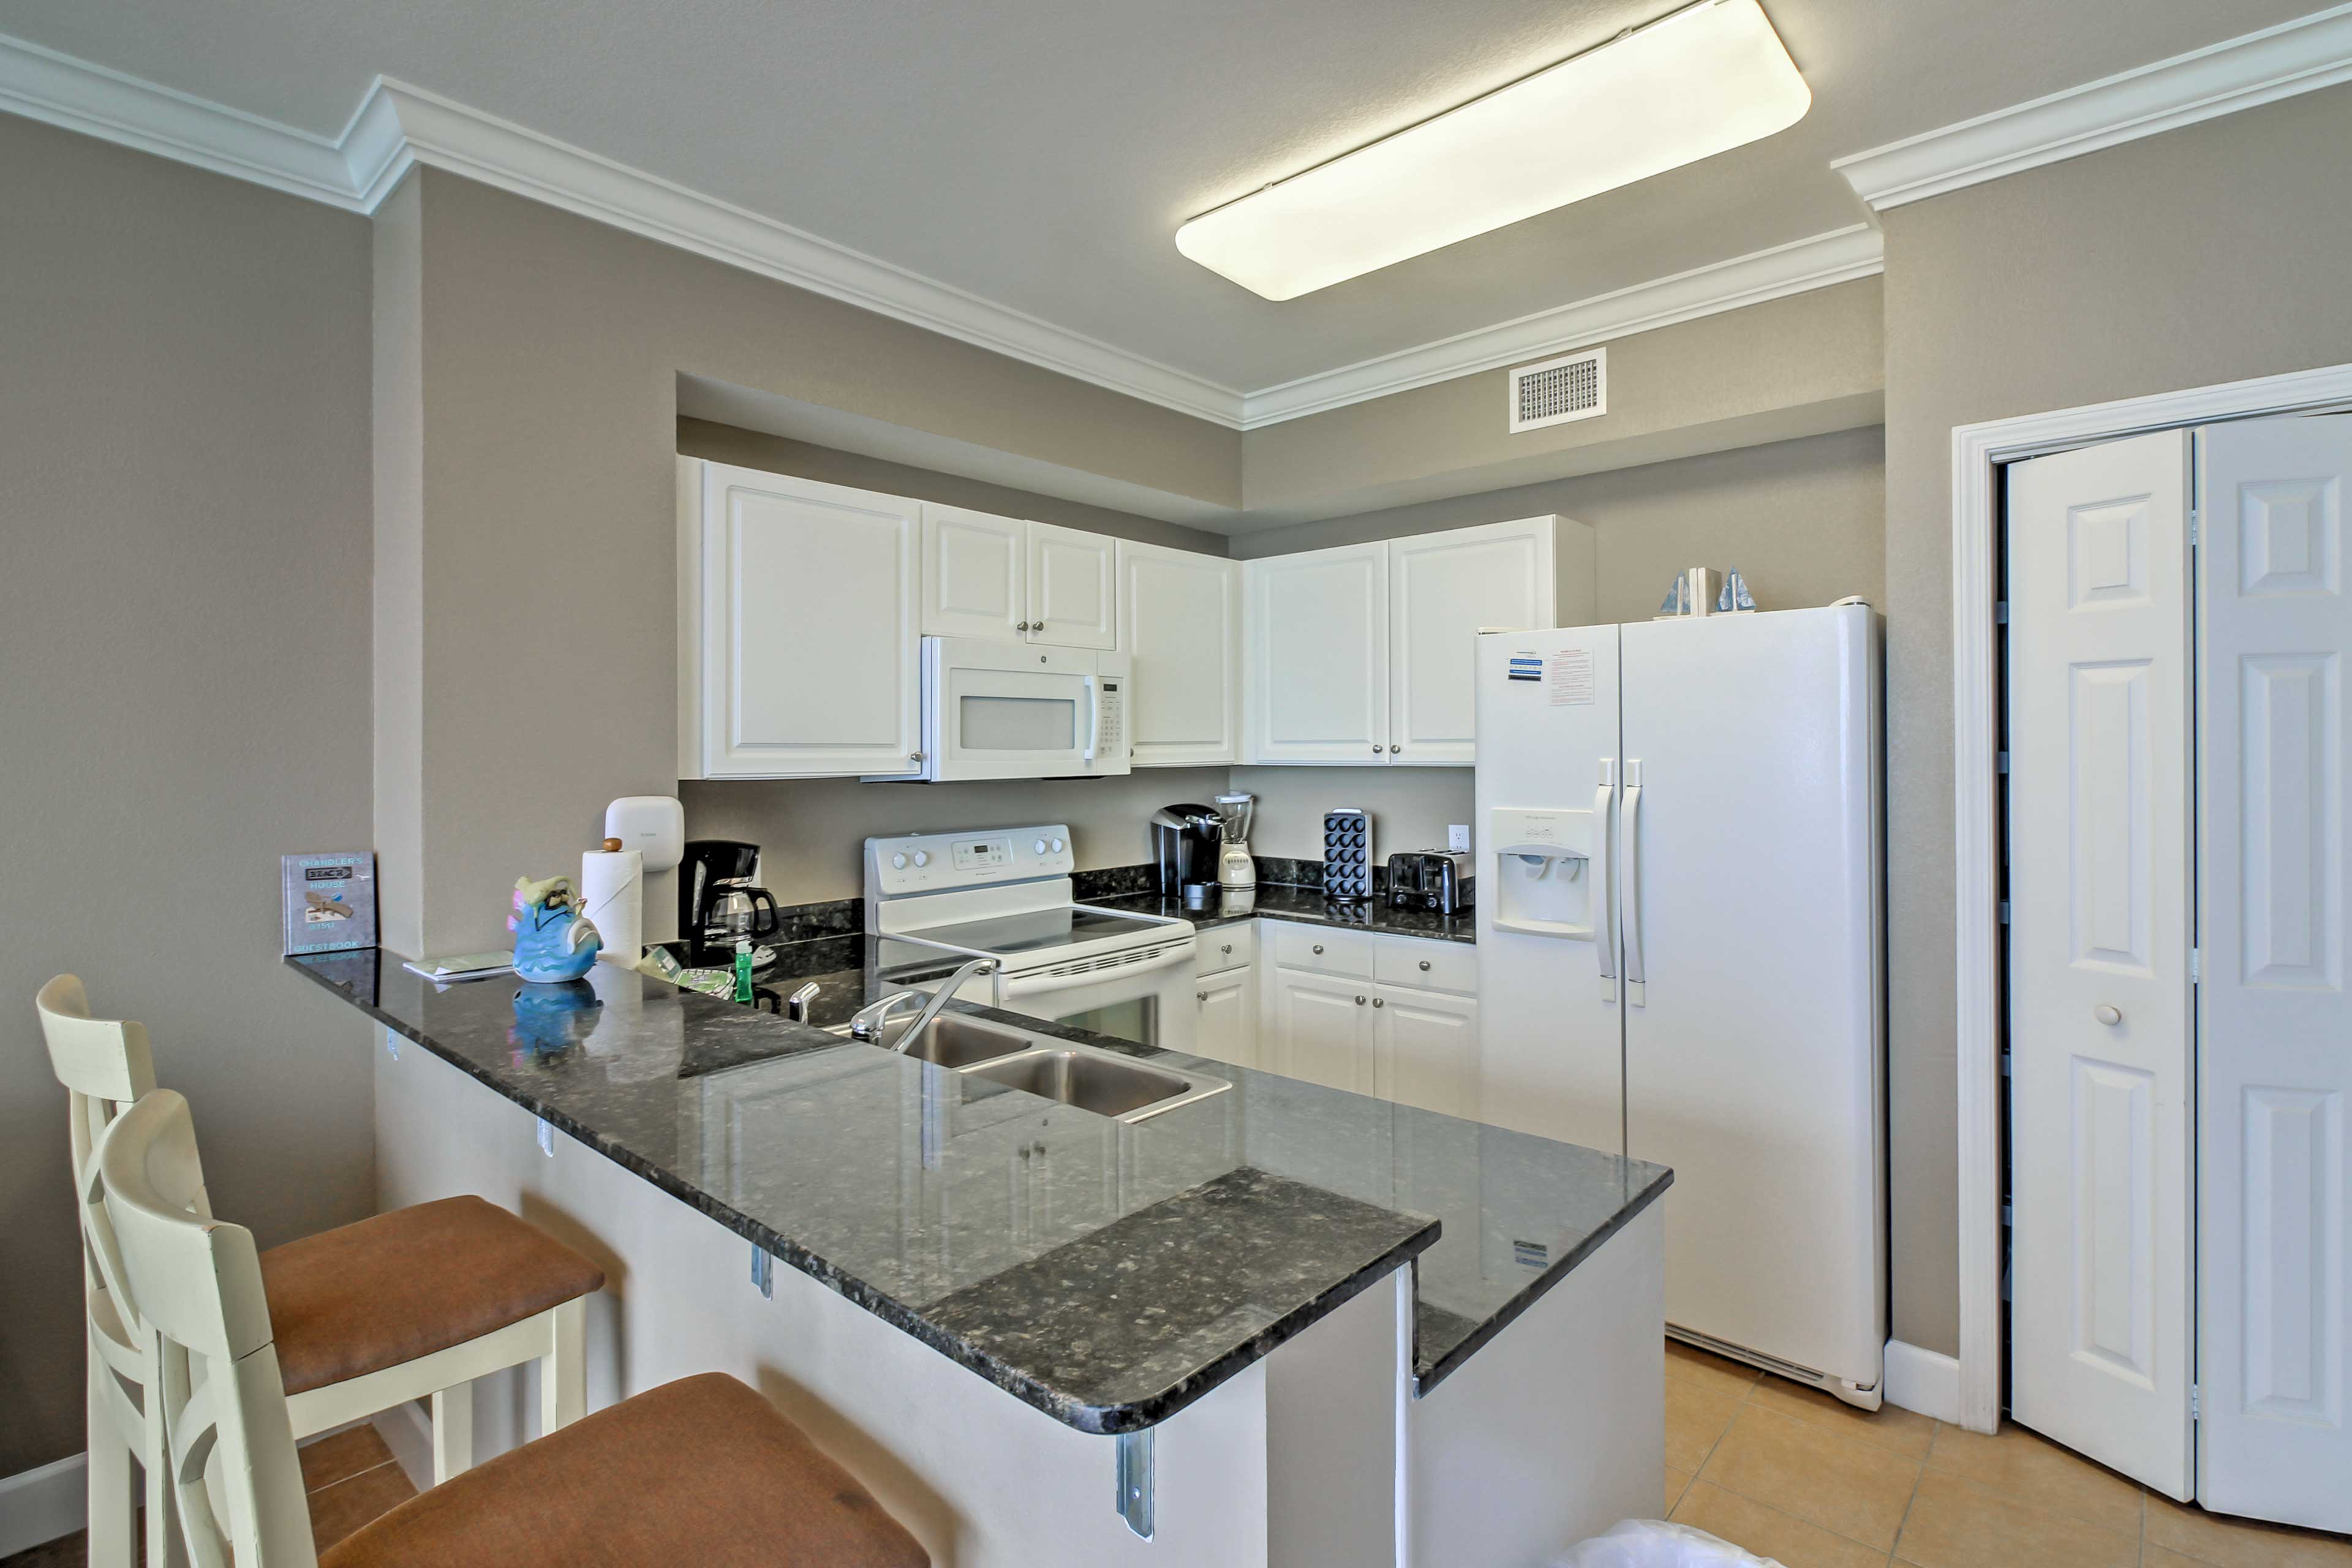 The quaint breakfast bar in the fully equipped kitchen provides seating for 2.